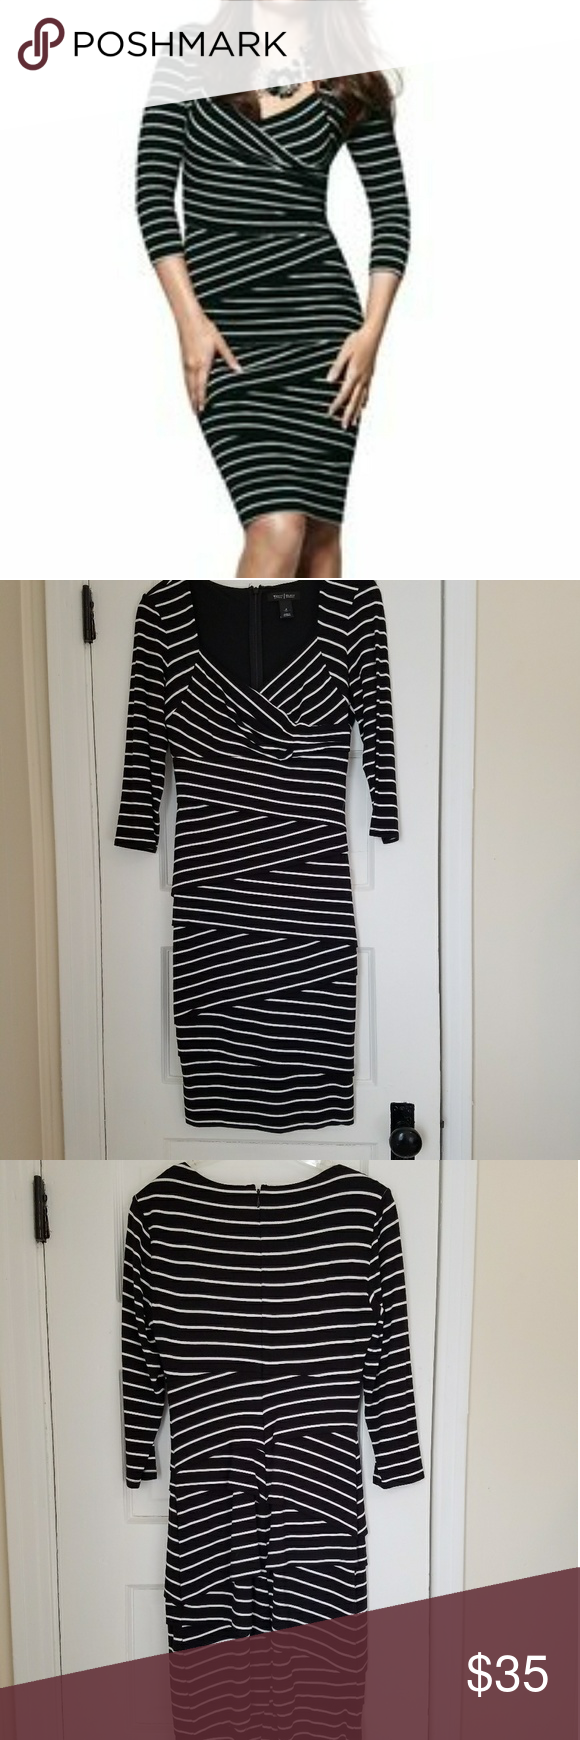 Black and white striped bodycon dress curtains venice